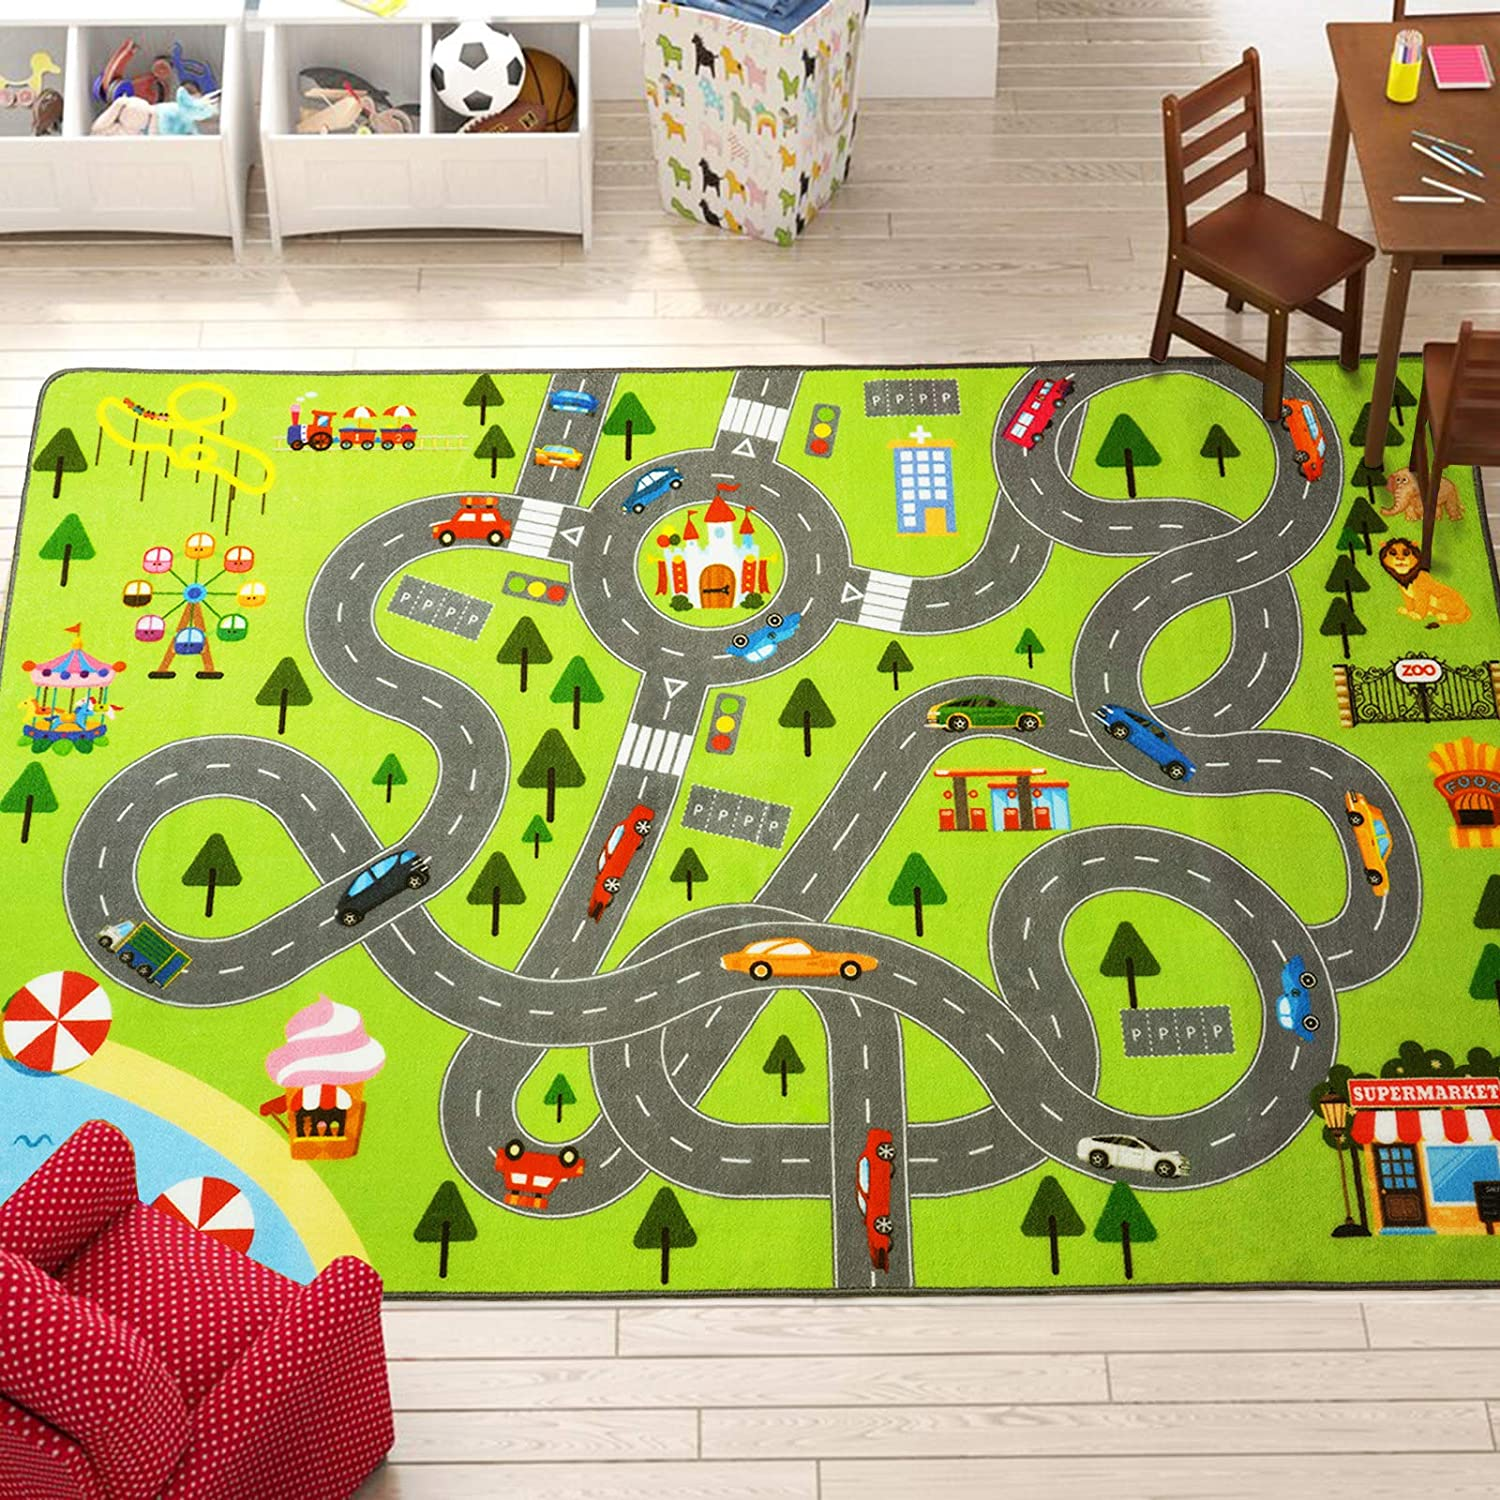 HOMORE Kids Play Mat Rug City and Very popular! Fun for Educational Boston Mall